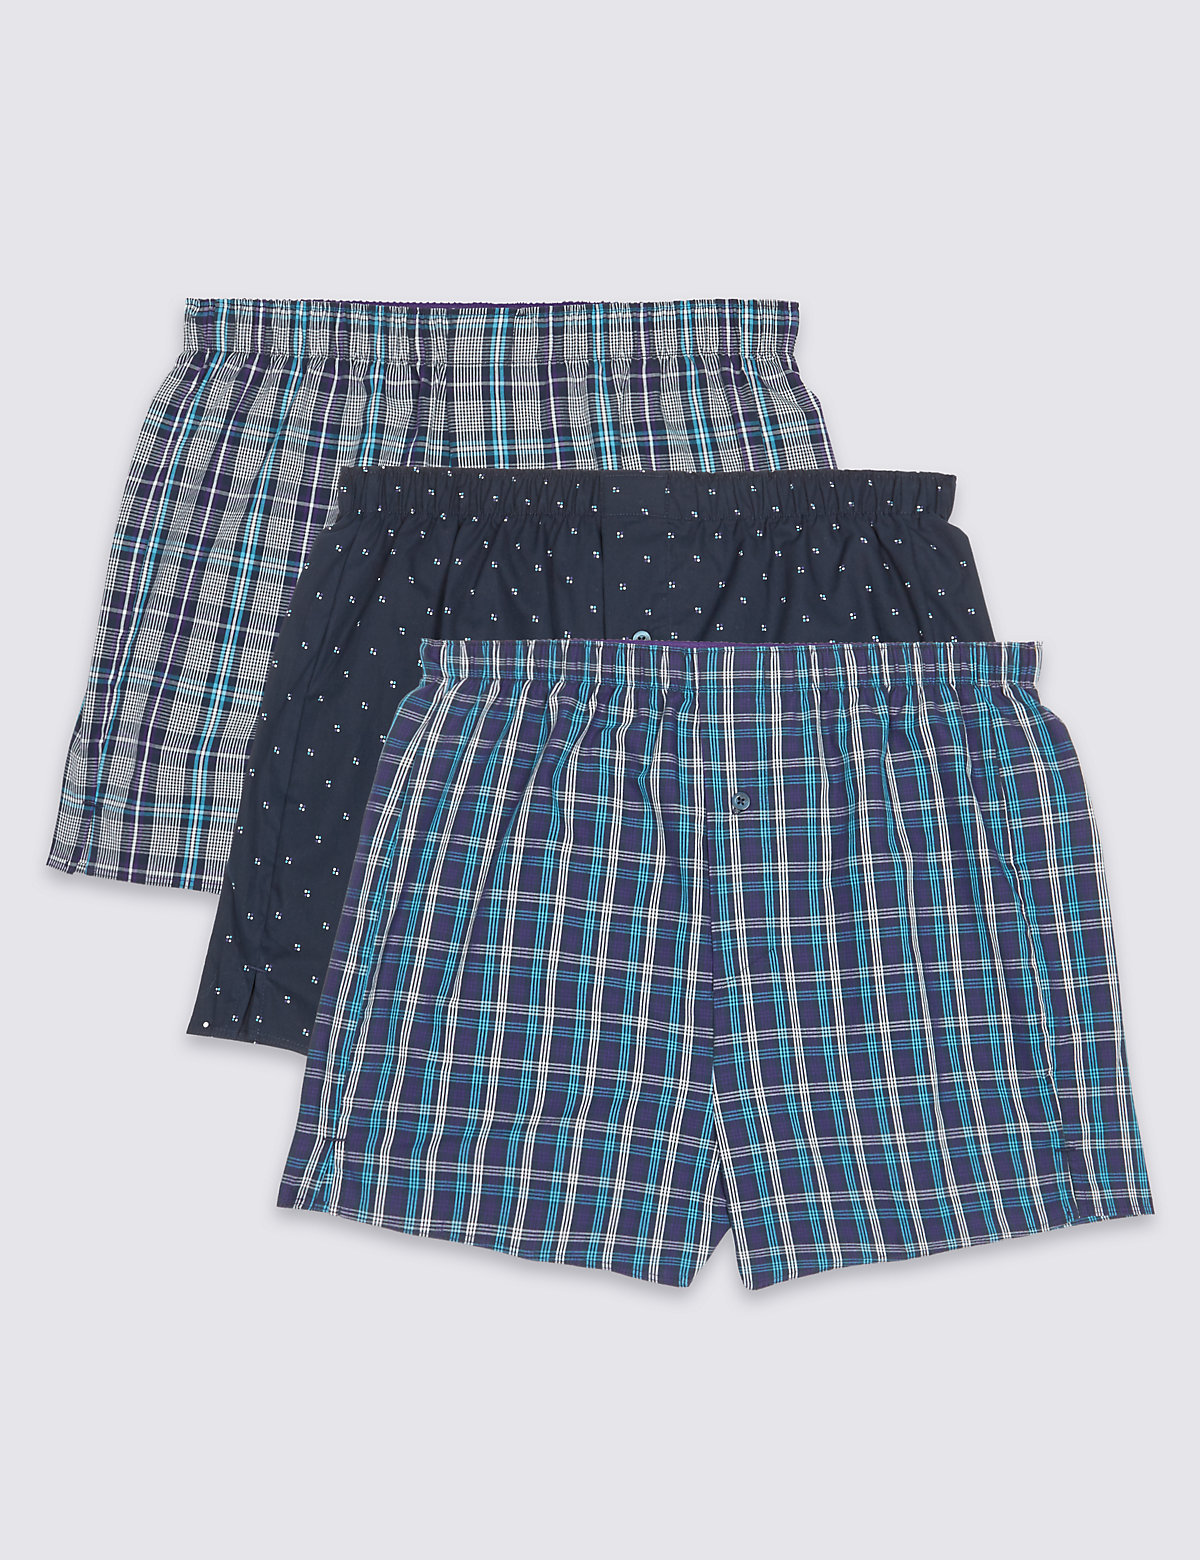 Mens Boxers | Assorted Cotton Woven Boxers For Men | M&S